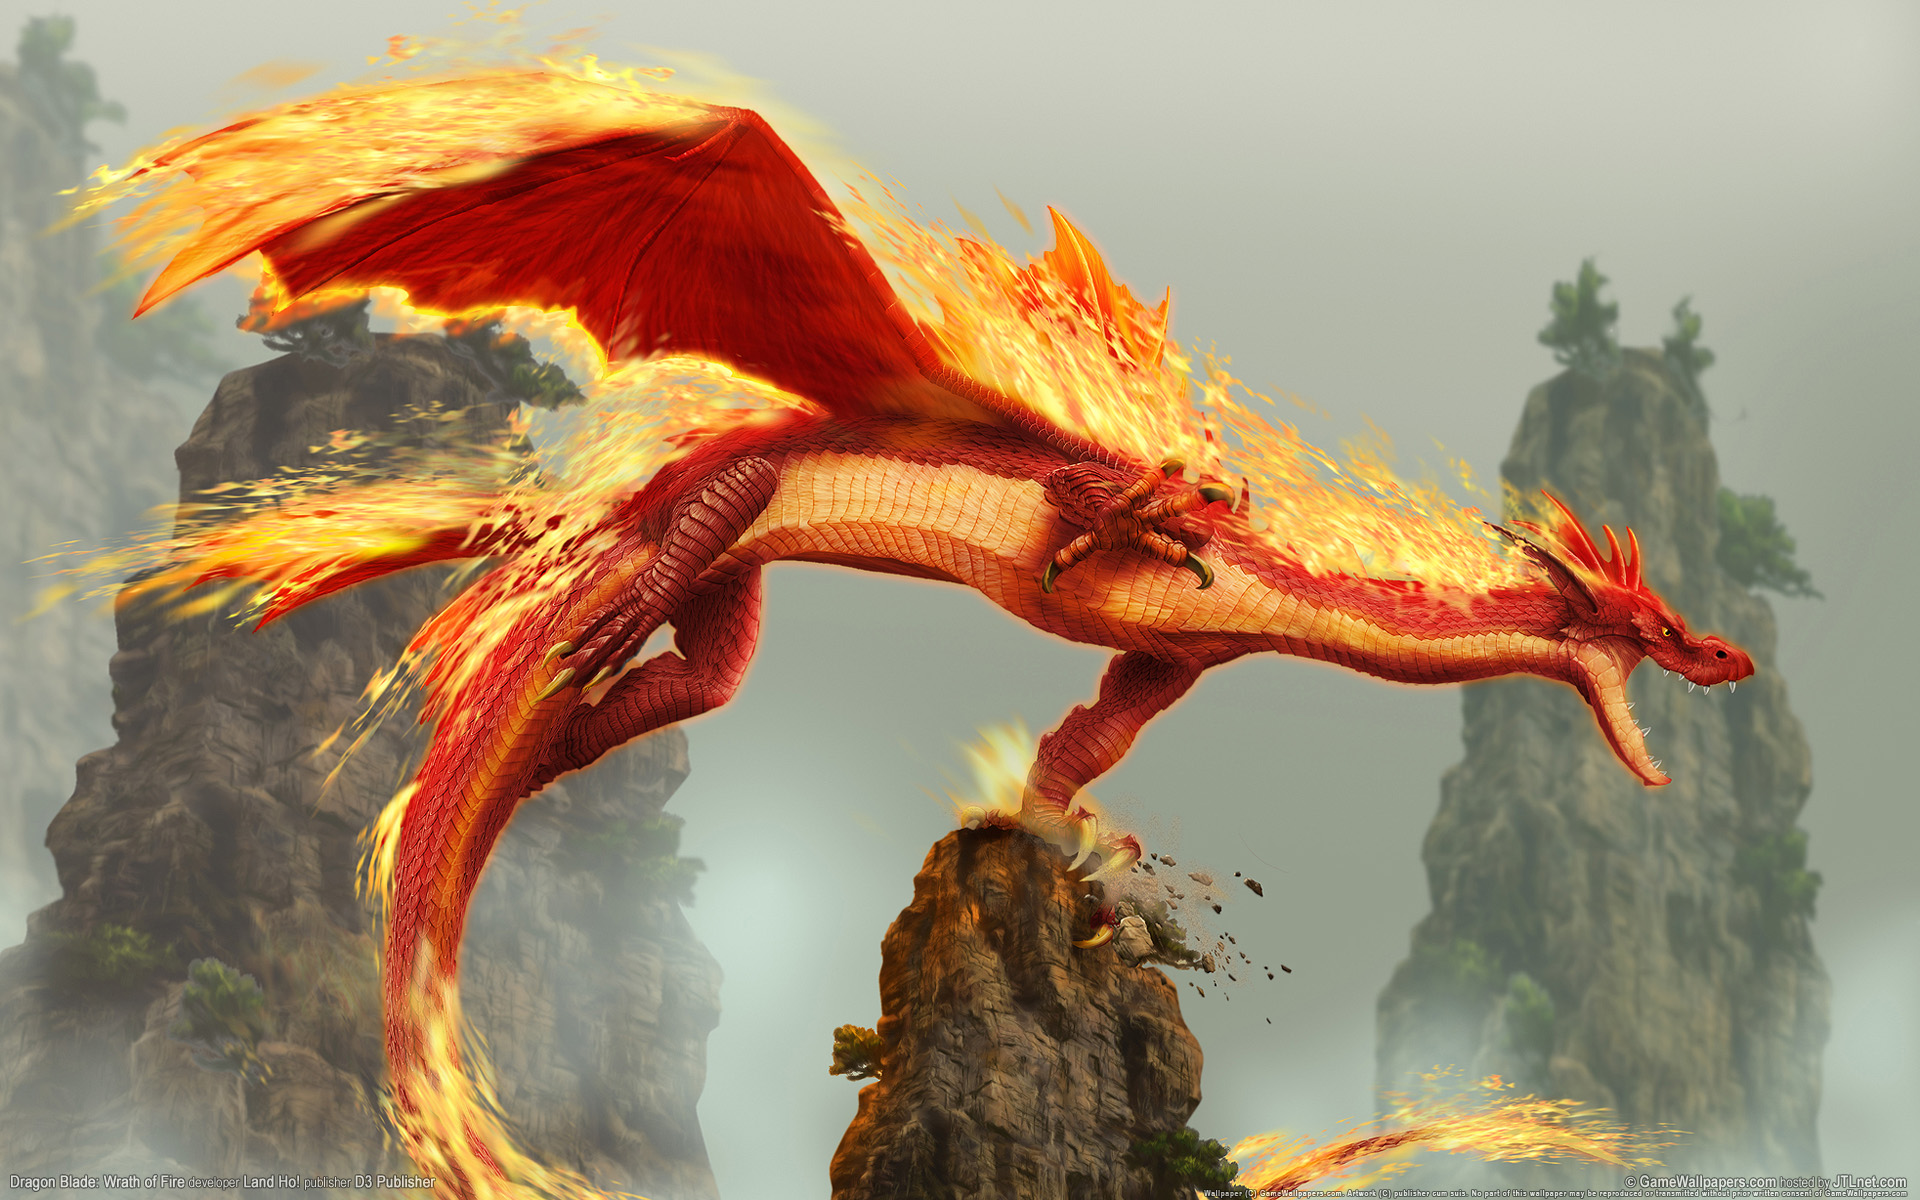 HD Wallpapers Dragon Blade Wrath of Fire